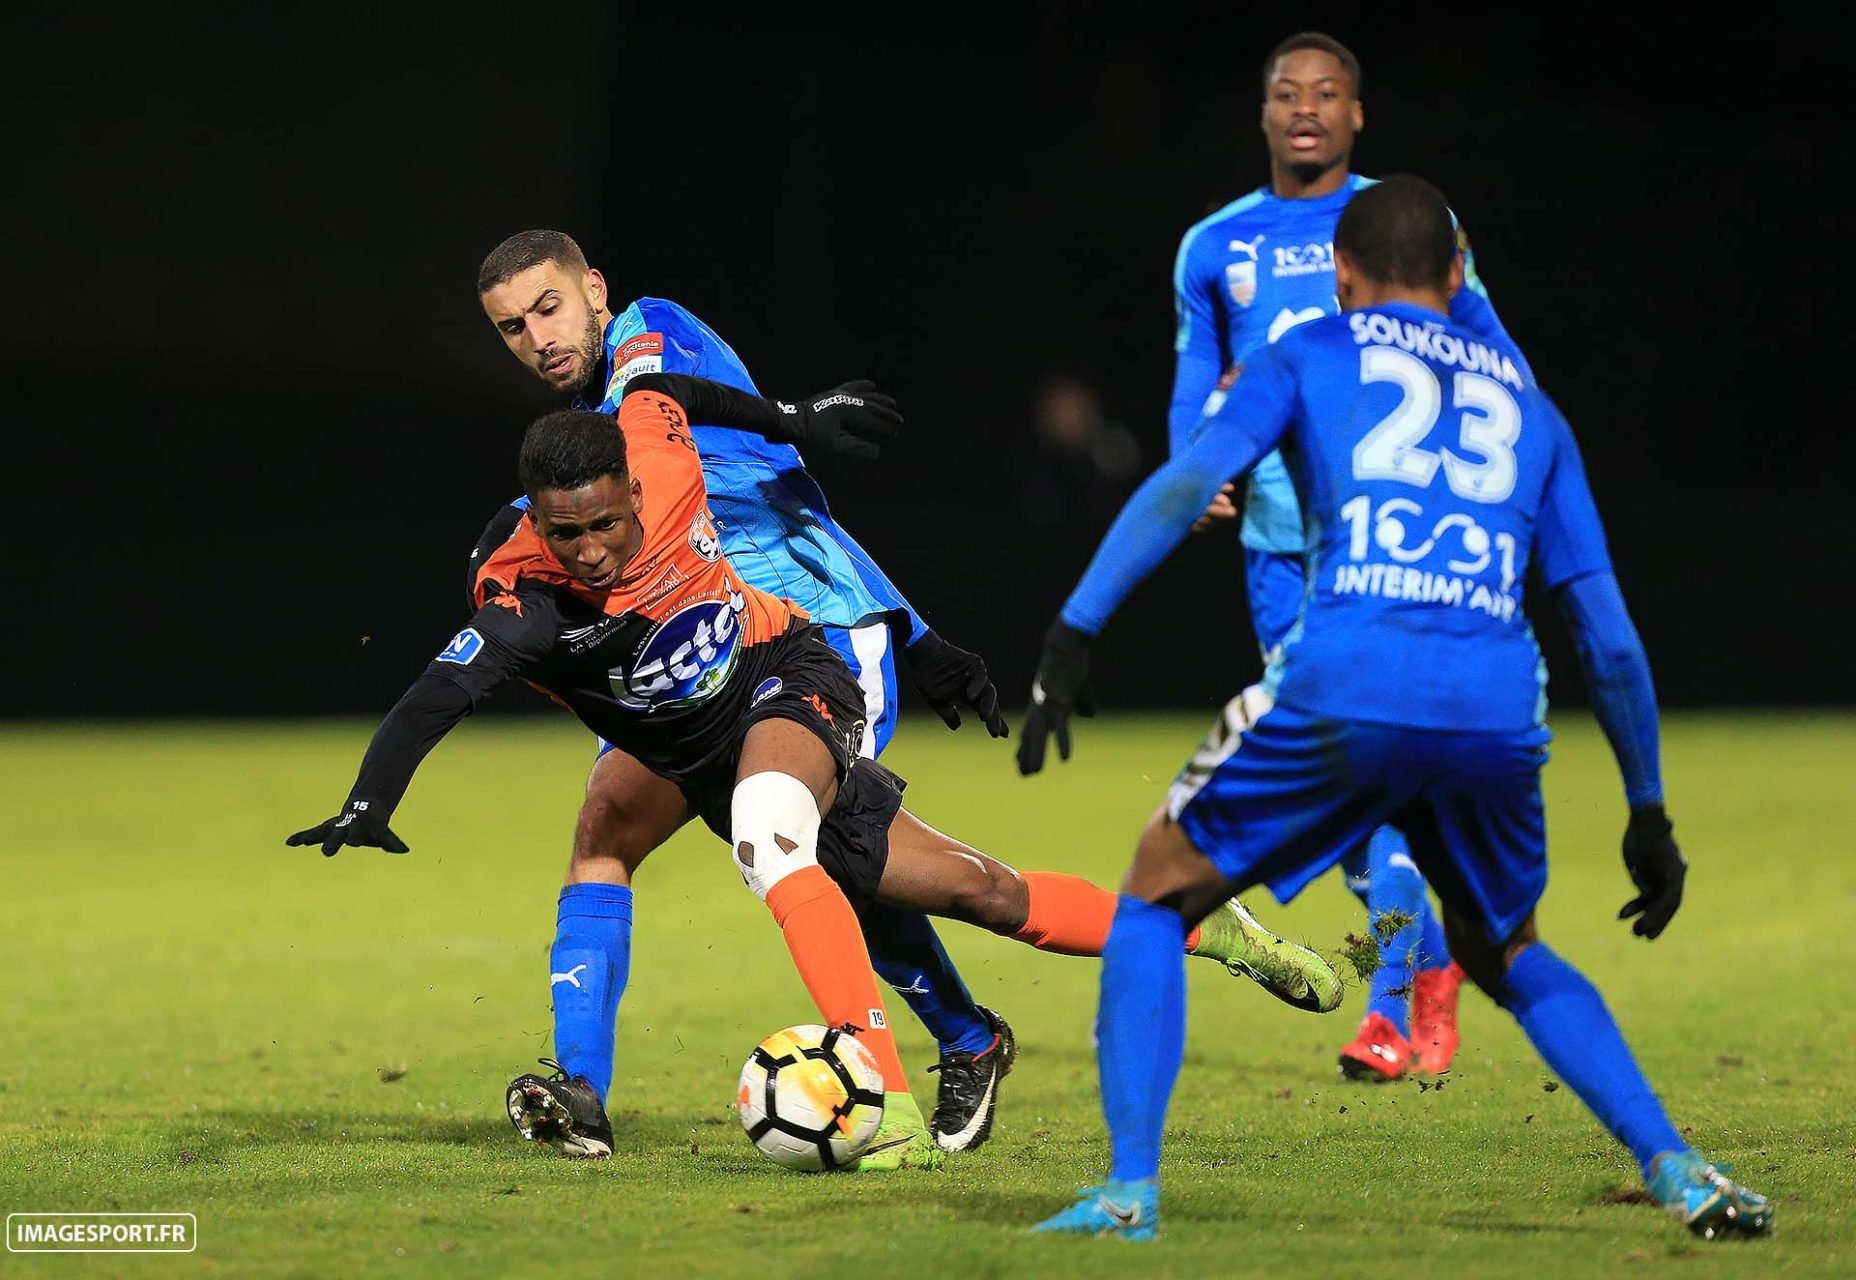 35-stade-lavallois-imagesport-neyou